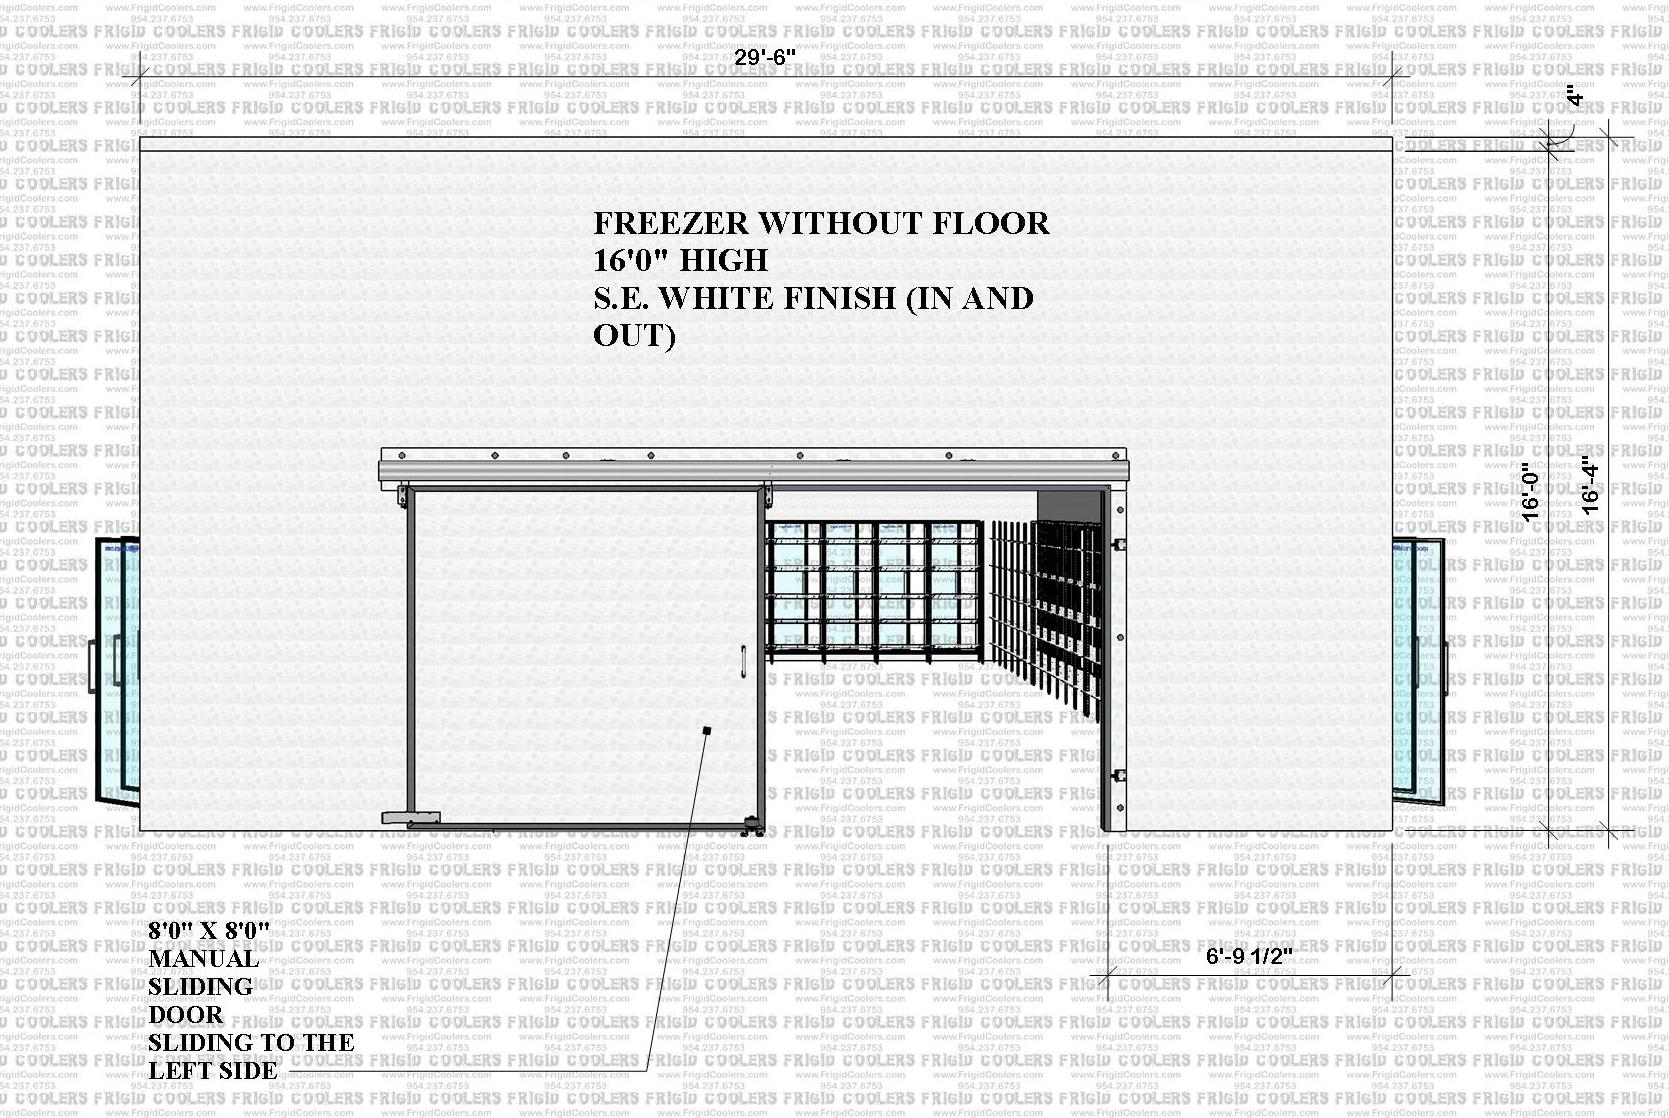 DISPLAY GLASS DOOR FREEZER 29-6X65X16 HIGH 57-GDS FREEZER  (4)